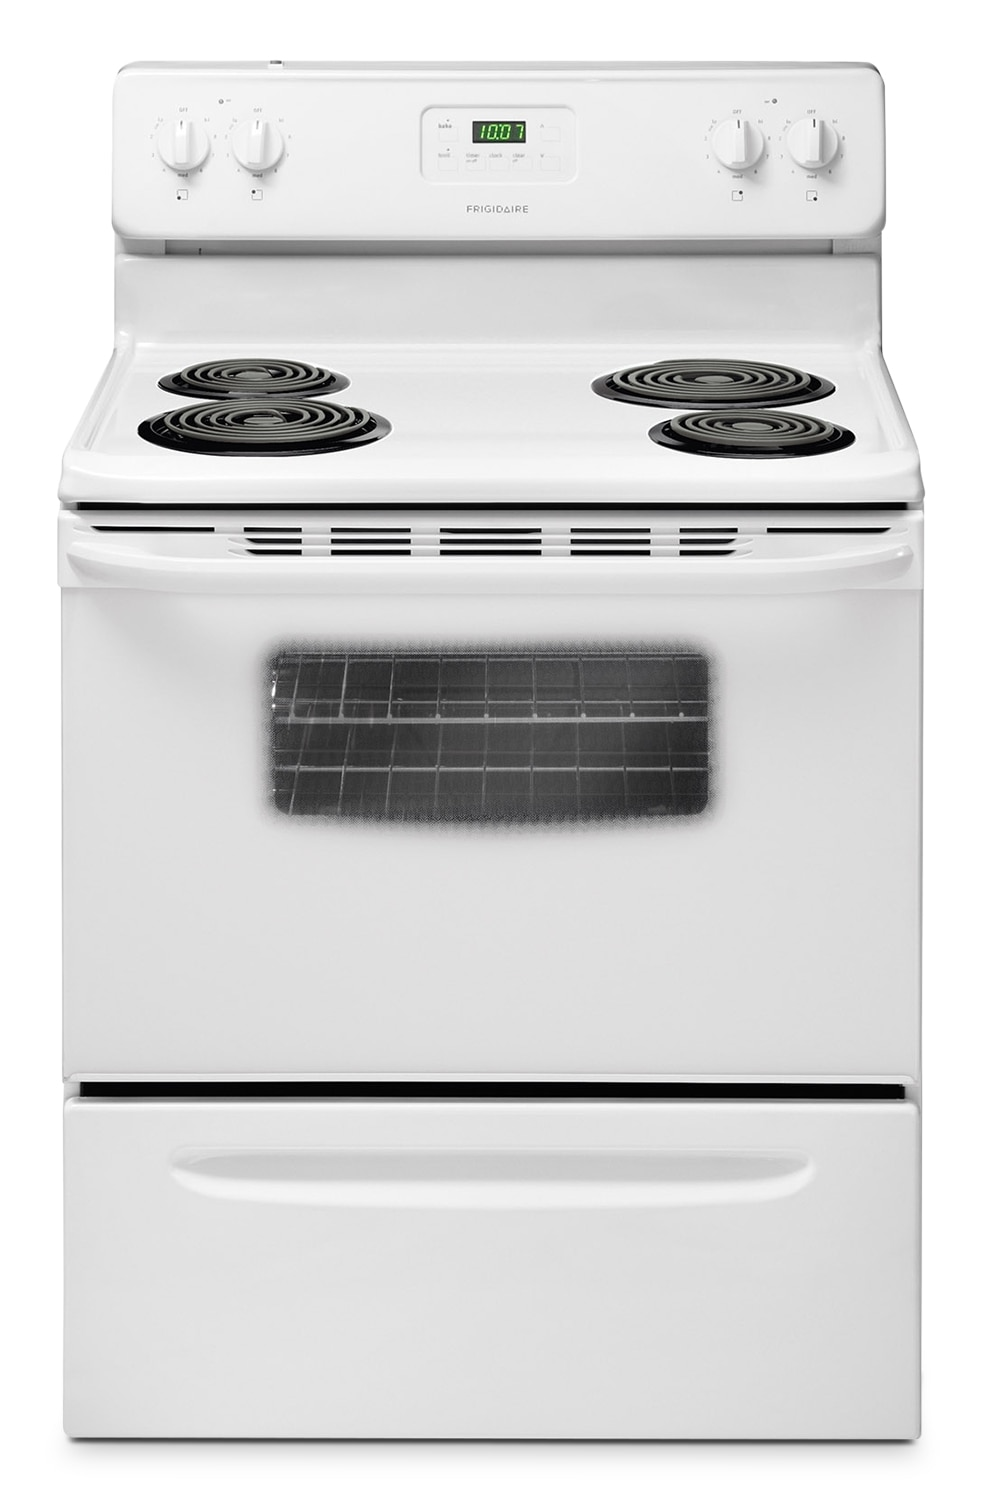 Frigidaire White Freestanding Electric Range (4.8 Cu. Ft.) - CFEF3012PW